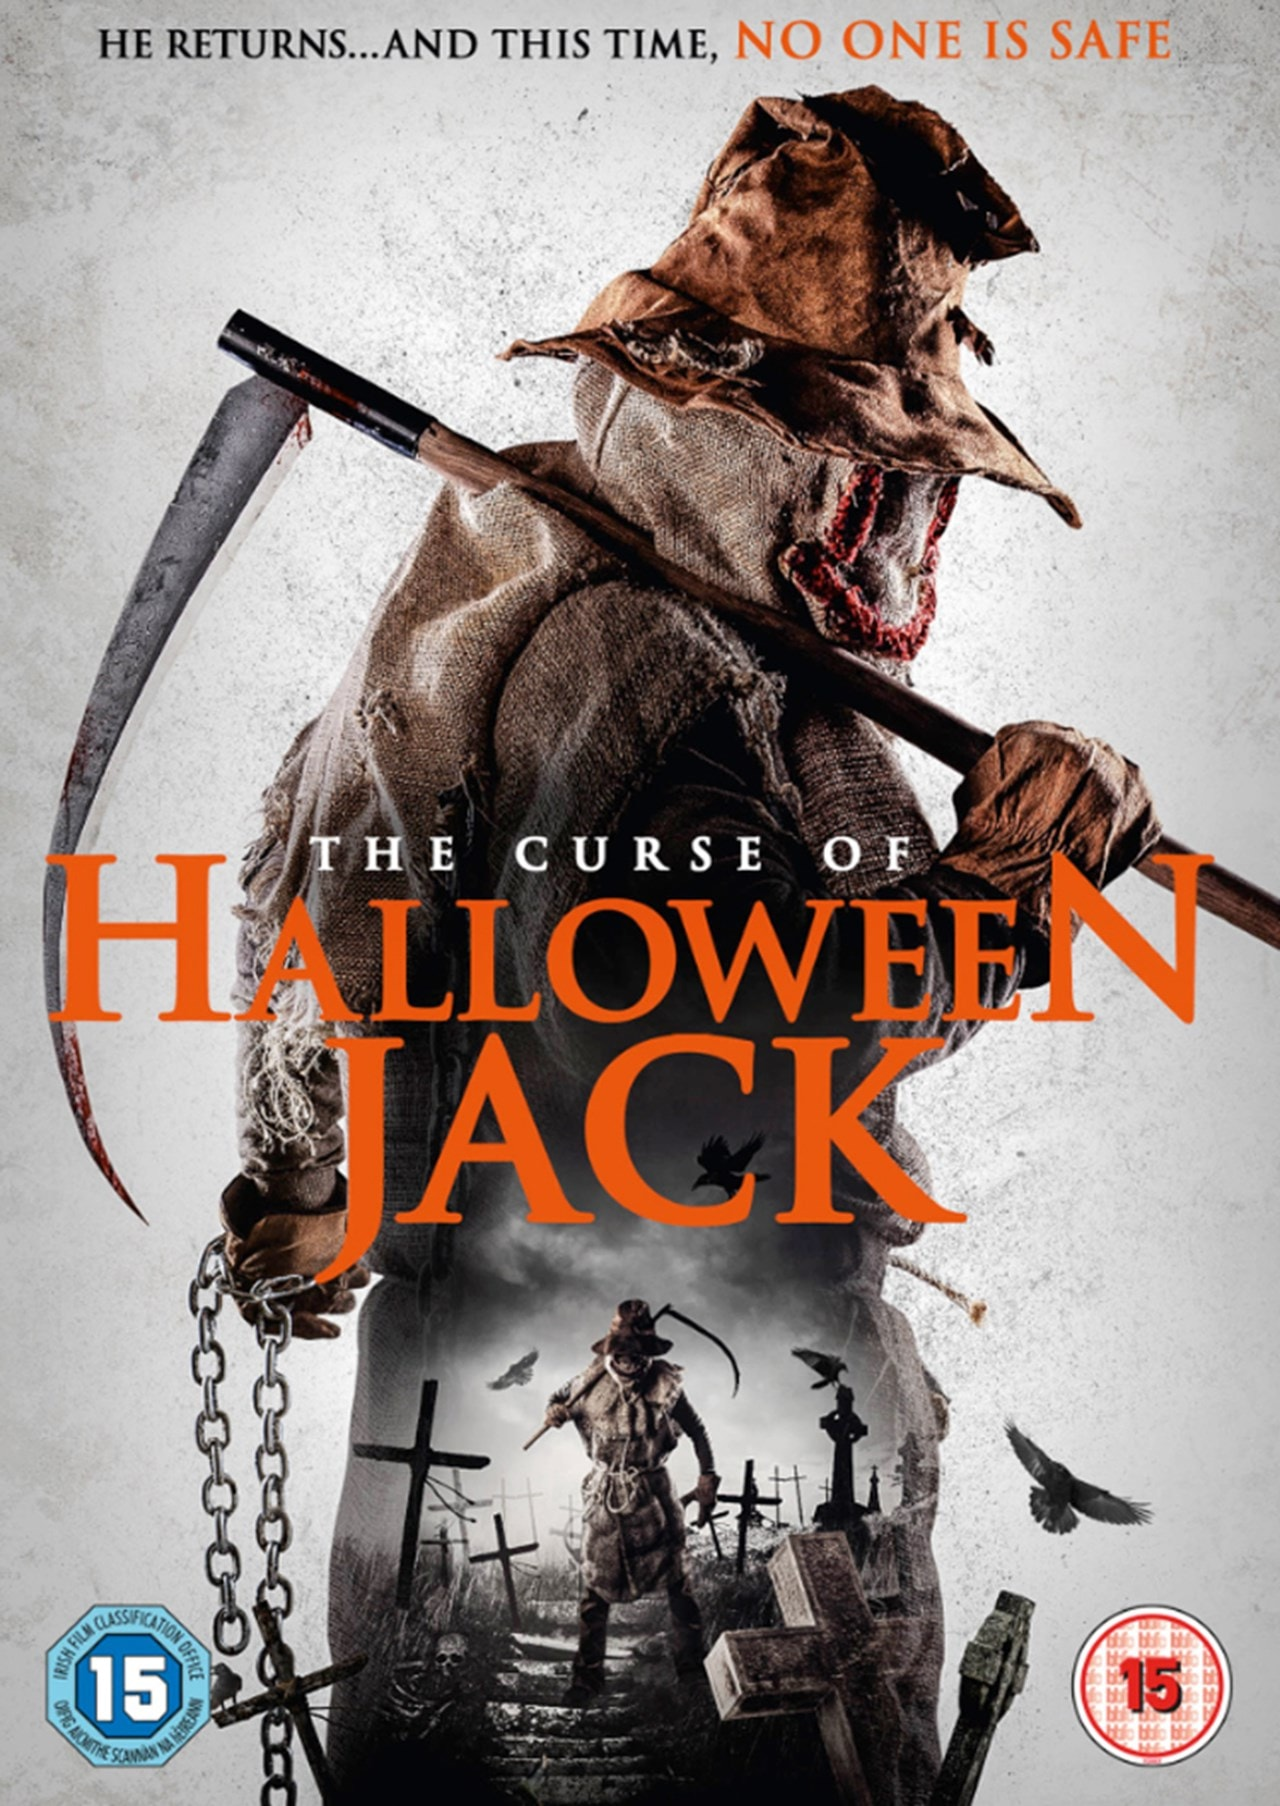 The Curse of Halloween Jack - 1